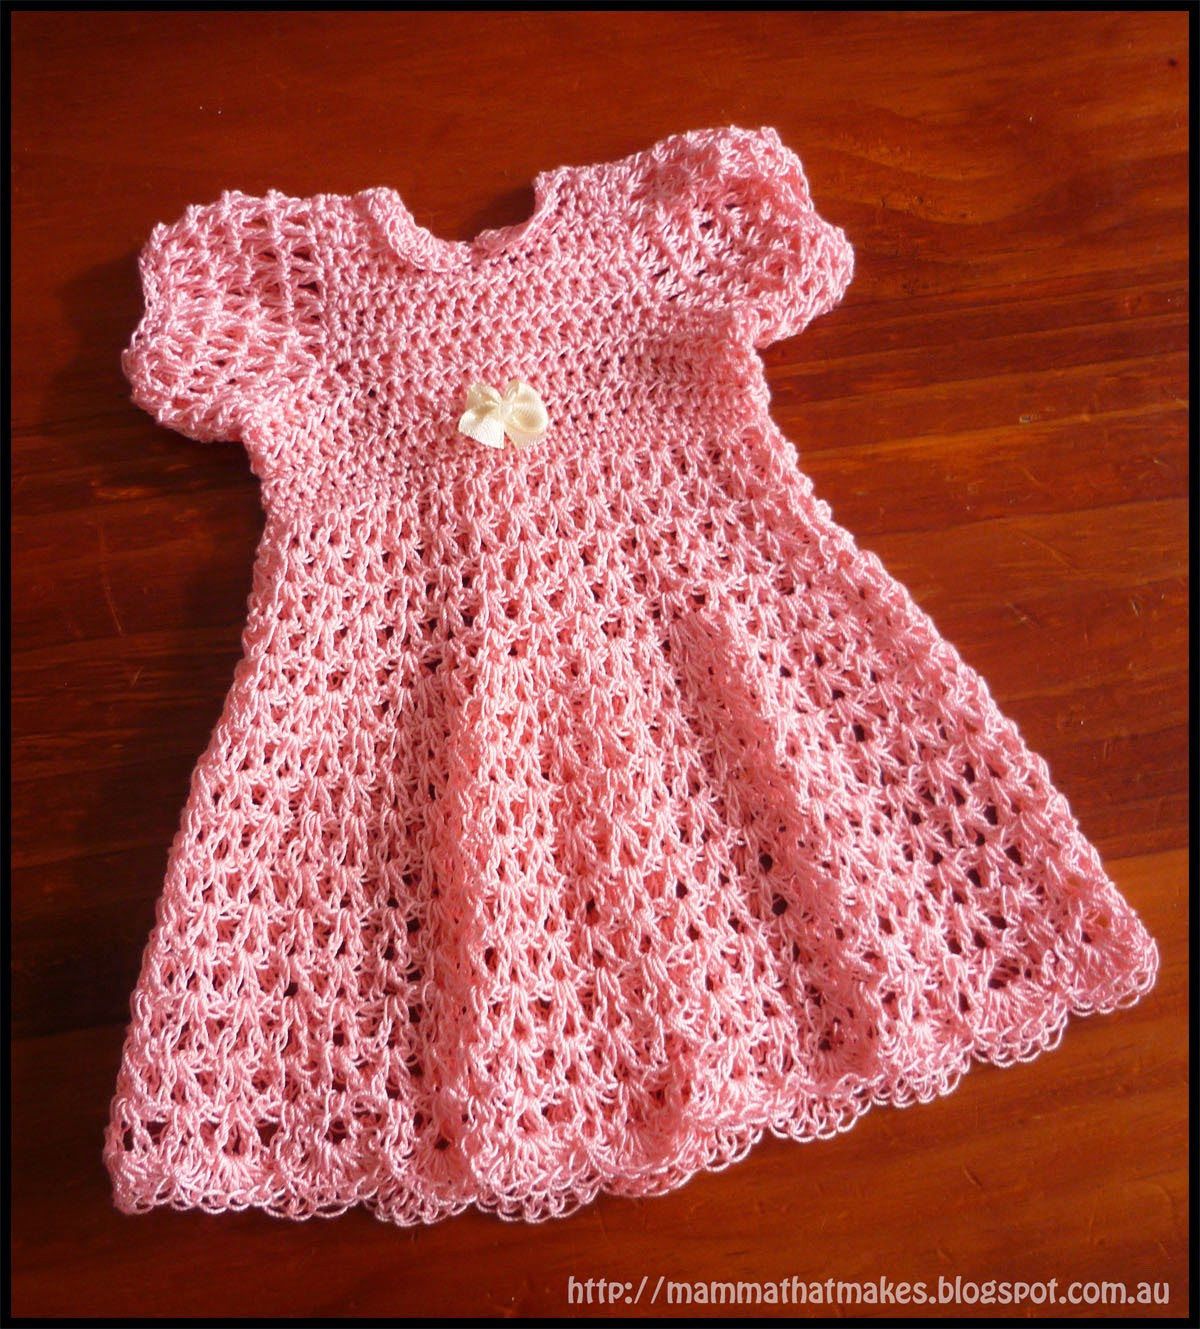 Best Of 16 Free Patterns for Crochet Girl's Dress the Perfect Diy All Free Crochet Patterns Of Wonderful 50 Pictures All Free Crochet Patterns